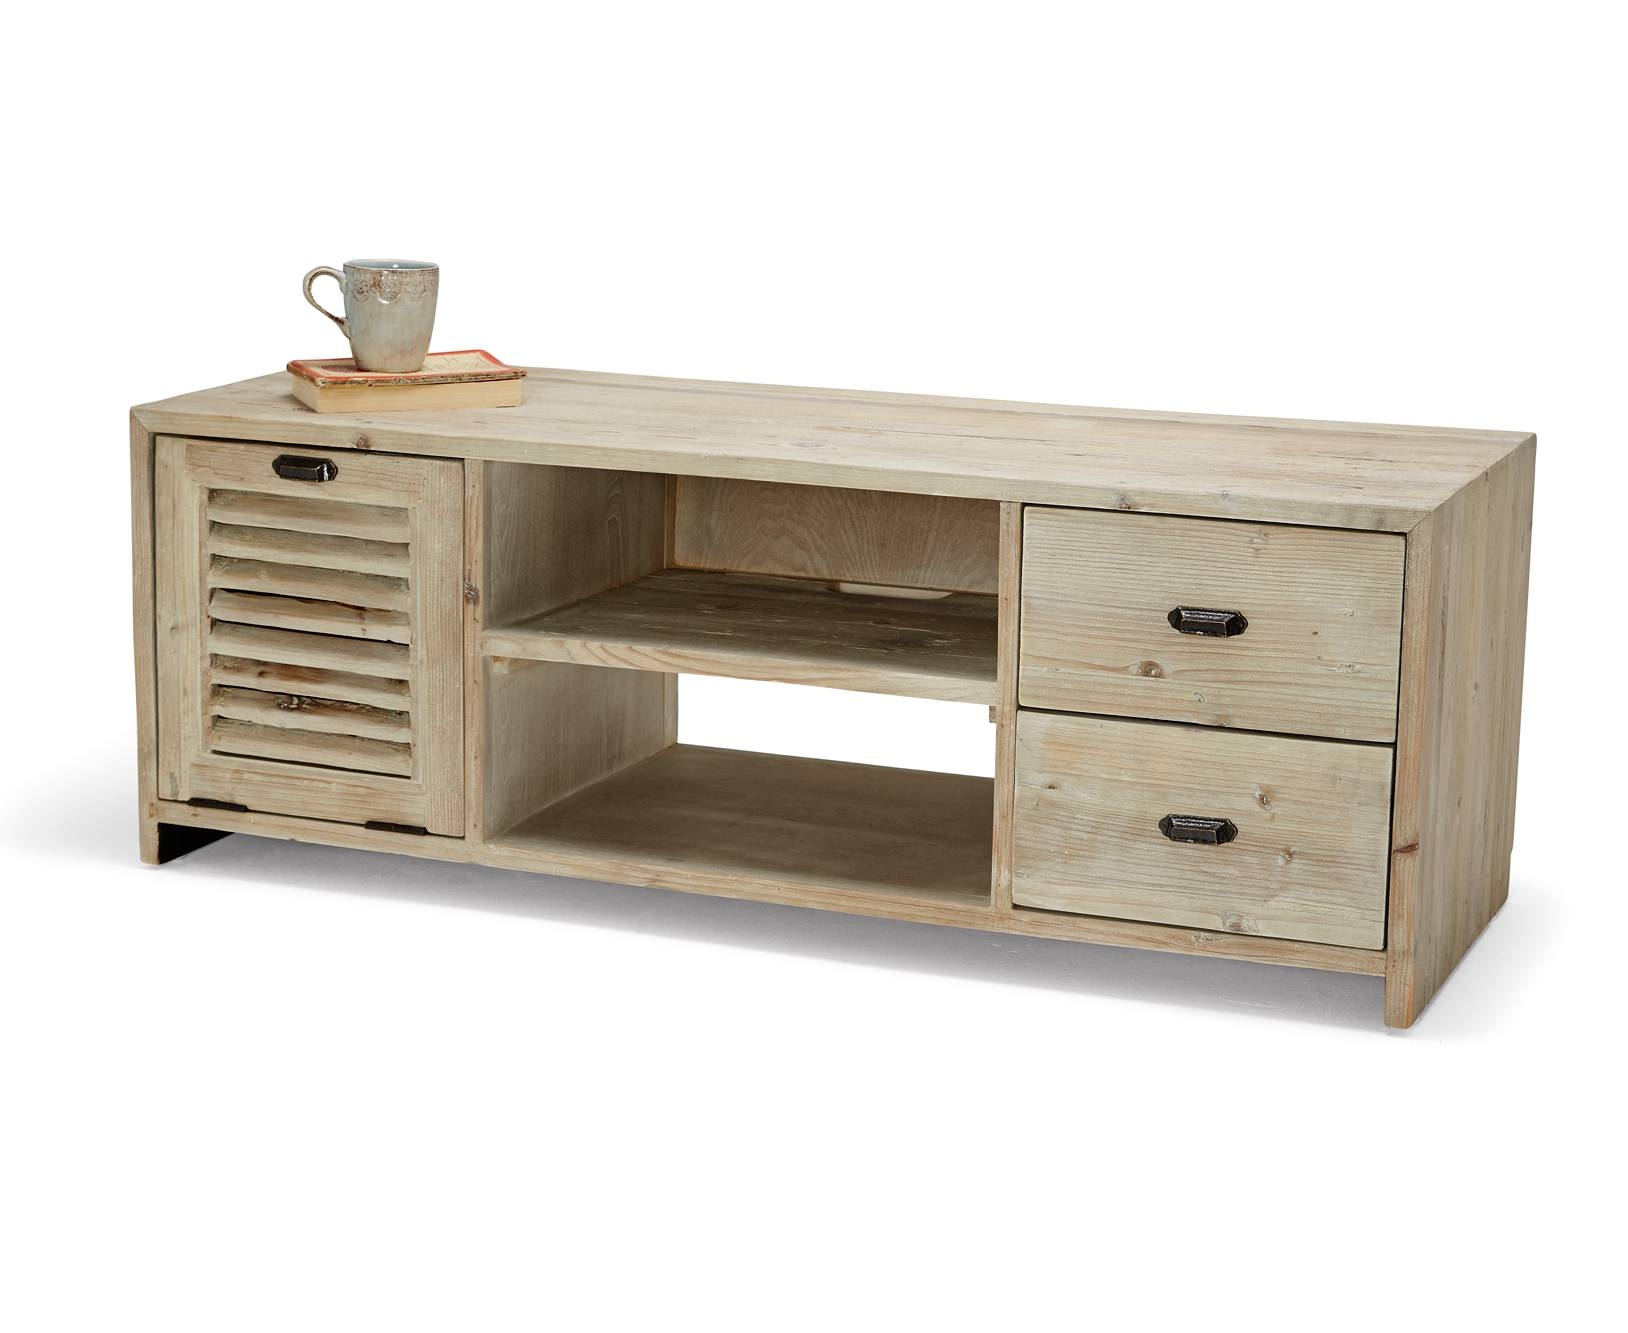 Toot Sweet Tv Stand | Farmhouse Style Tv Stand | Loaf Inside Wooden Tv Stands (View 12 of 15)